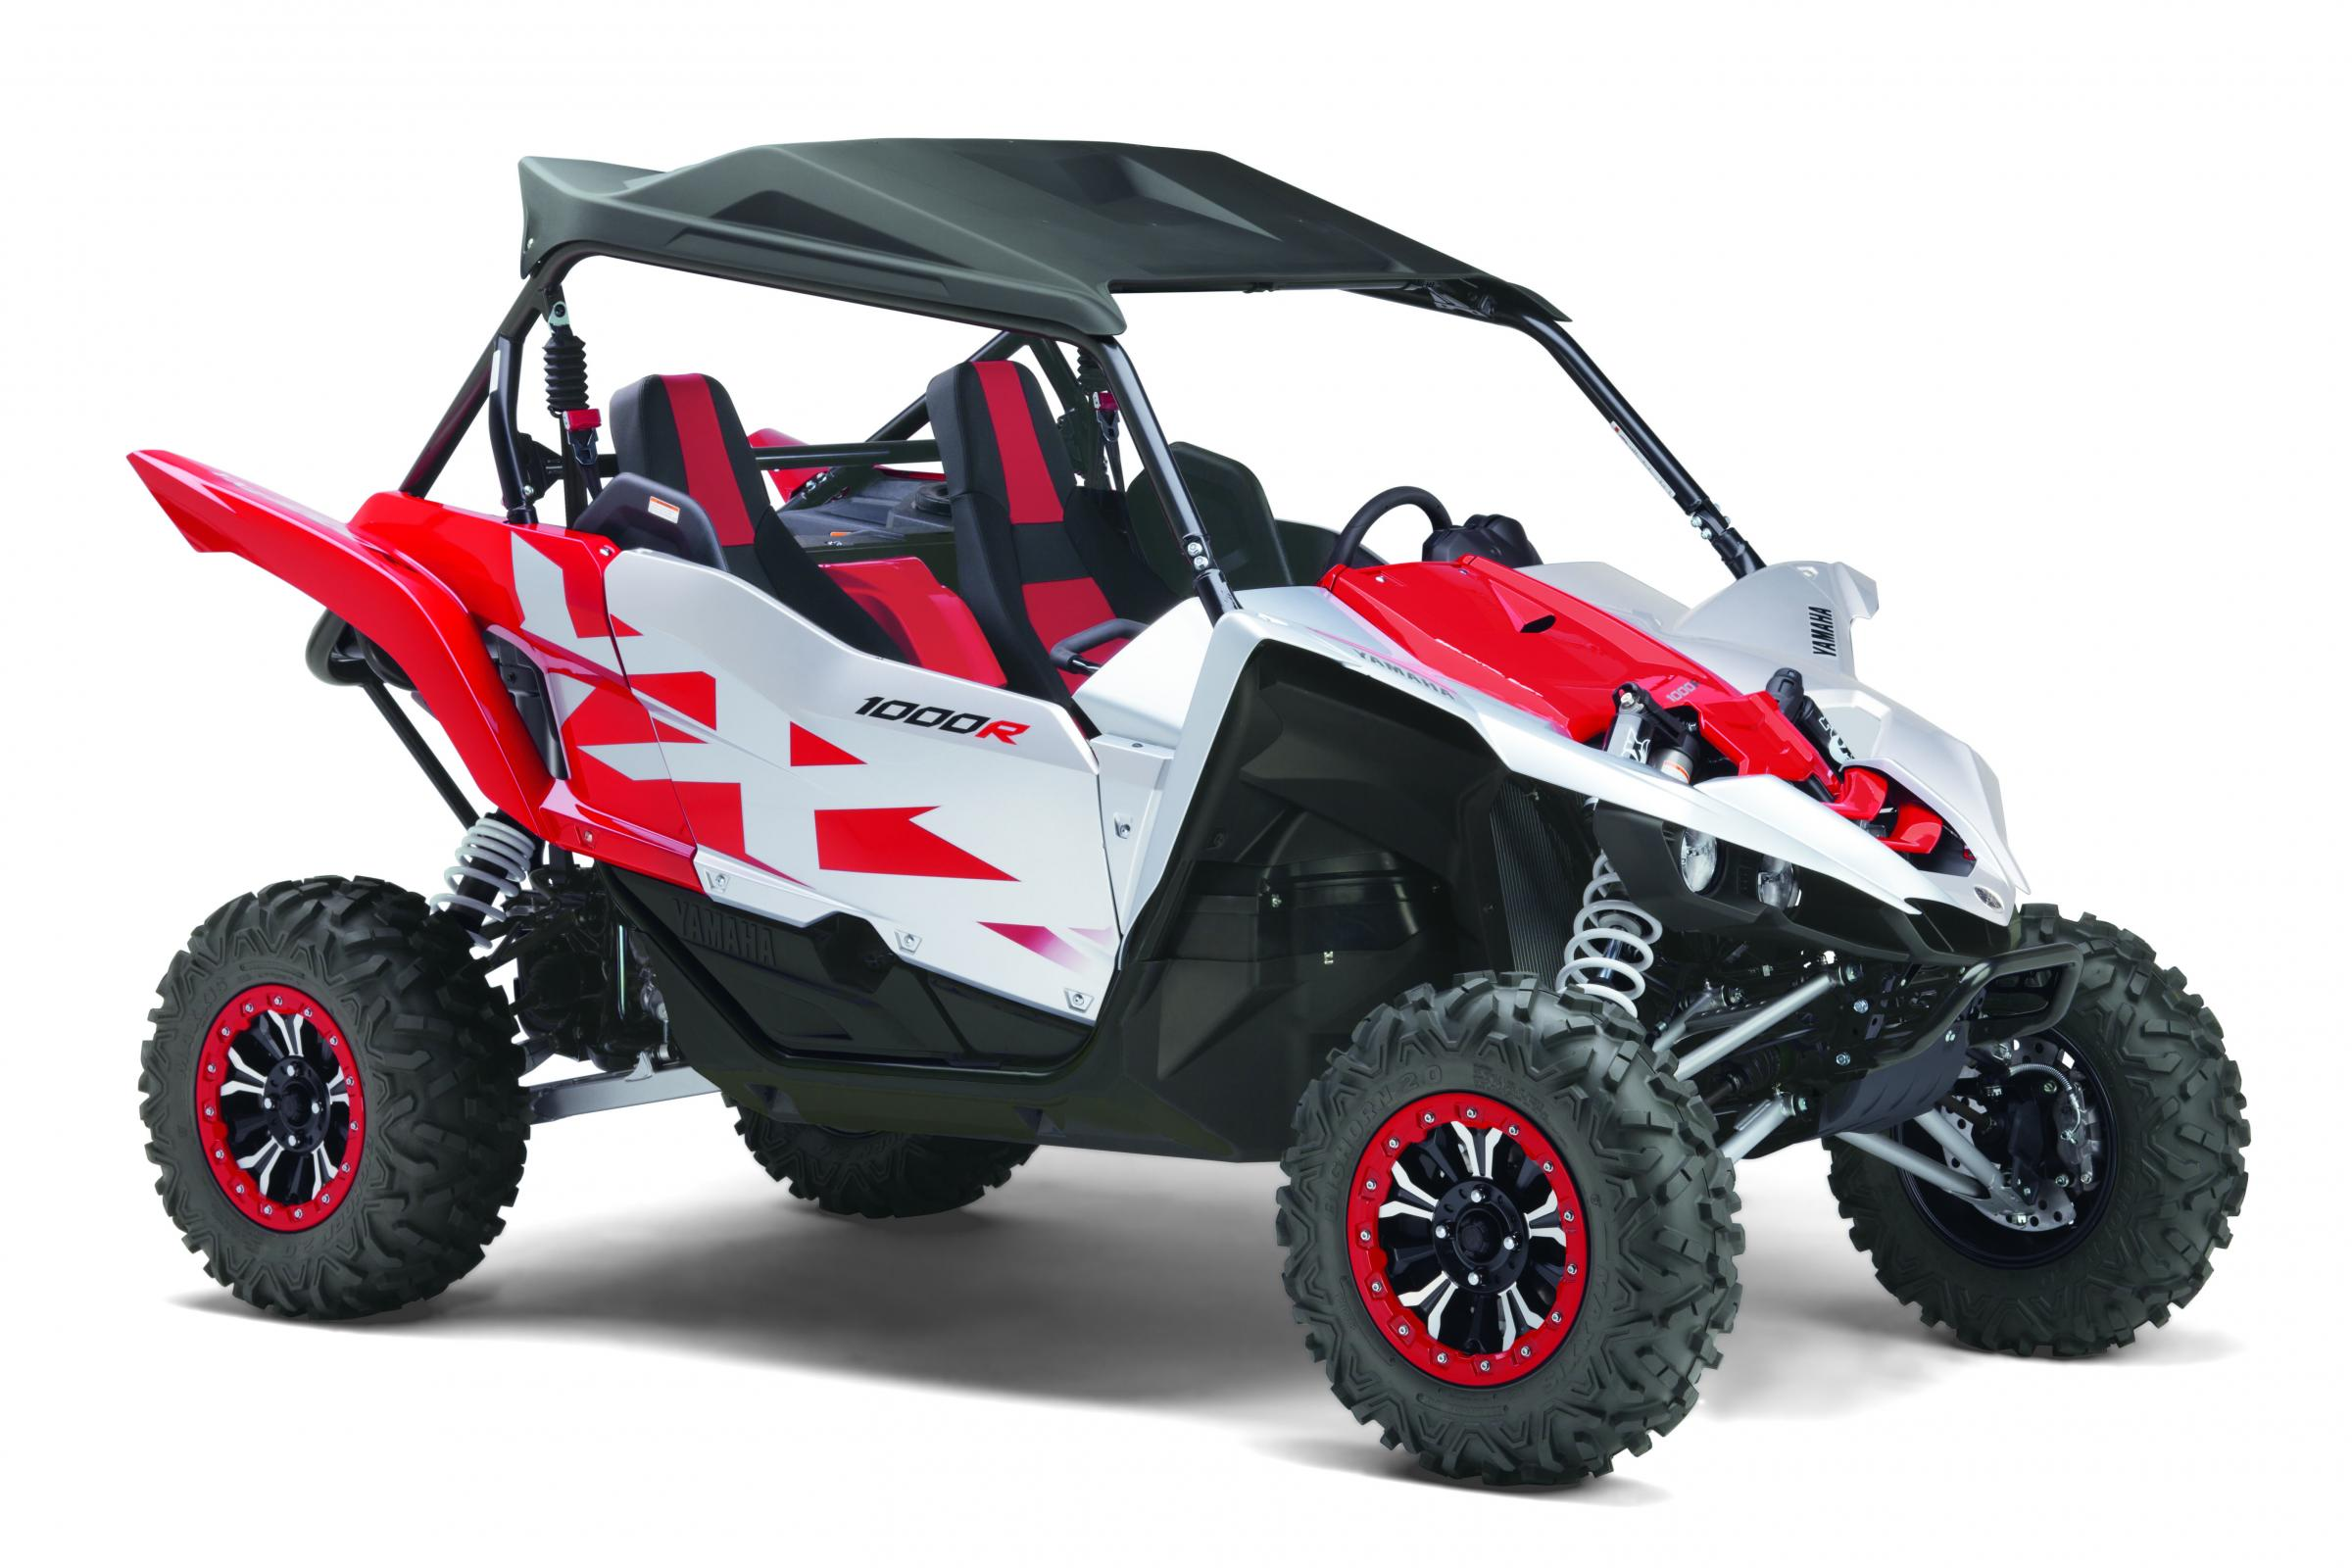 yamaha introduces new yxz1000r and wolverine sxs special. Black Bedroom Furniture Sets. Home Design Ideas